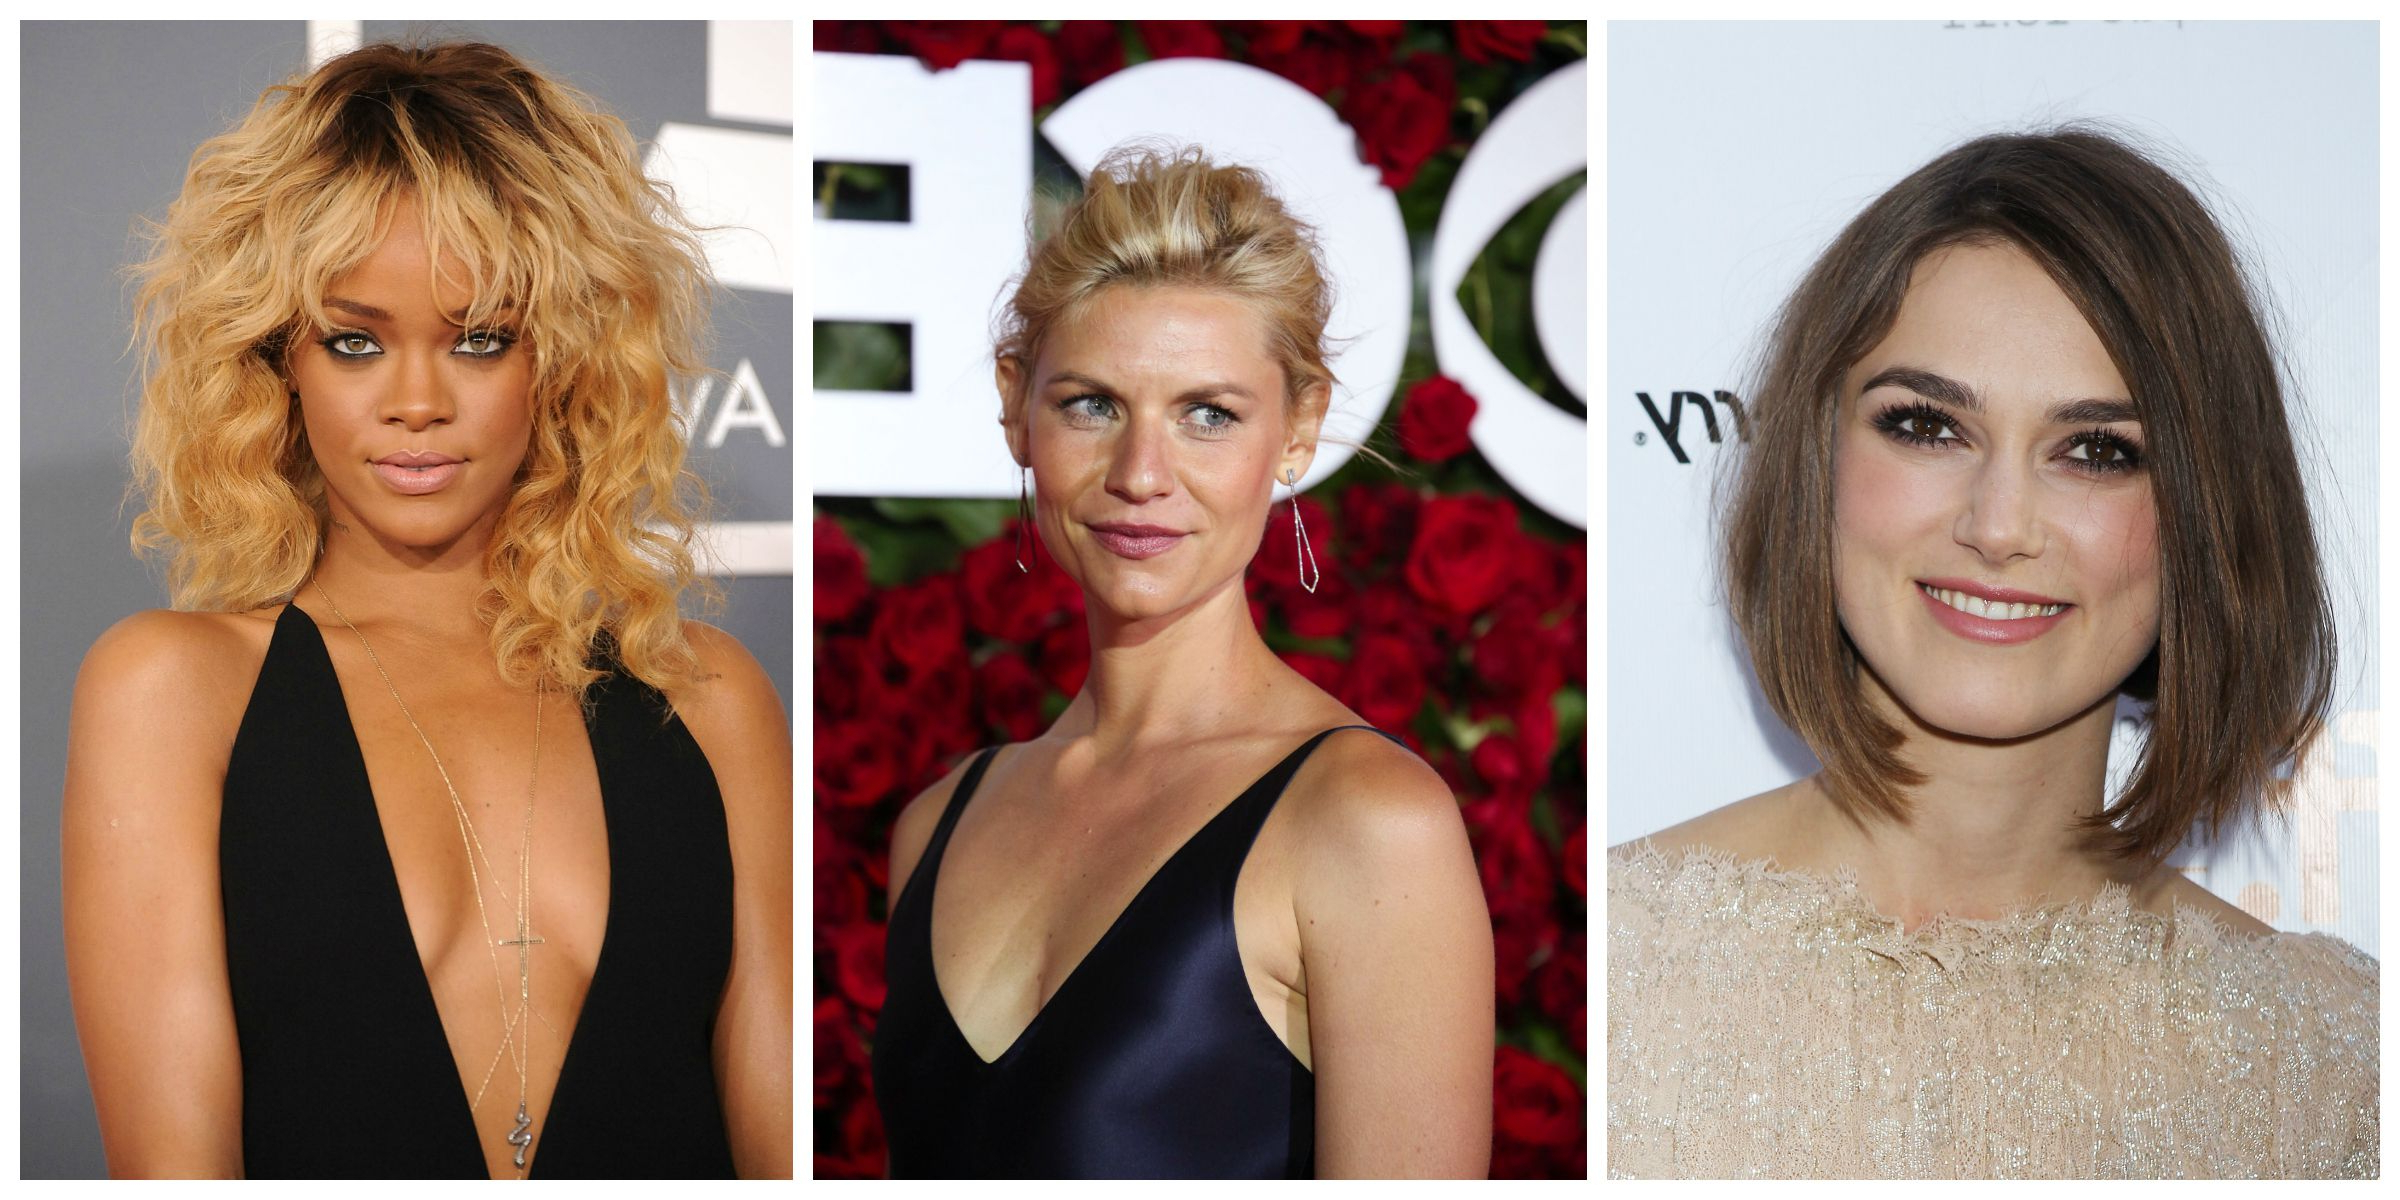 The 13 Best Hairstyles For Square Faces Regarding Short Hairstyles For Pointy Chins (View 12 of 25)